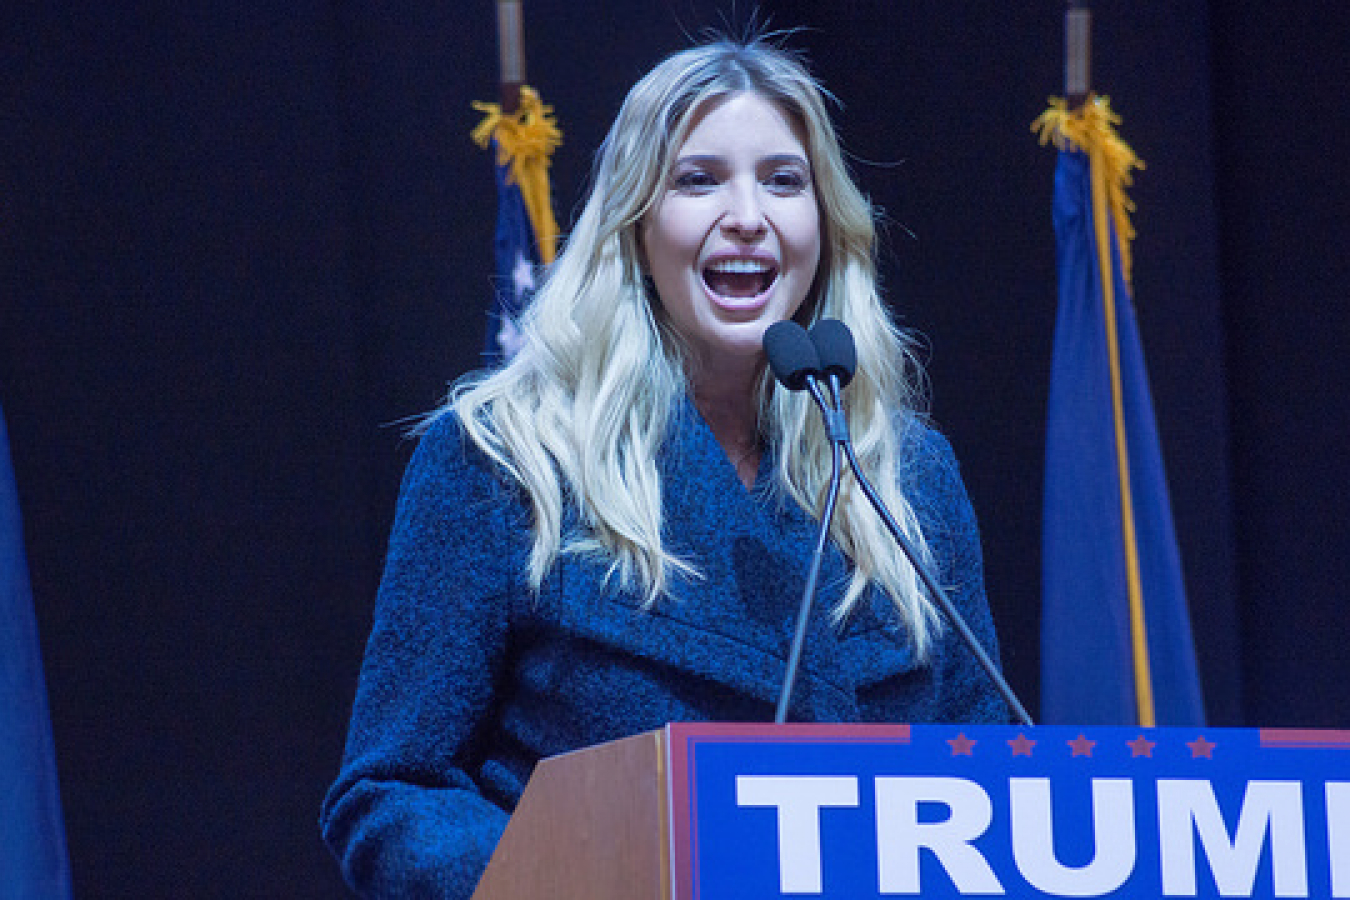 Ivanka Trump - Daughter and adviser to Donald Trump